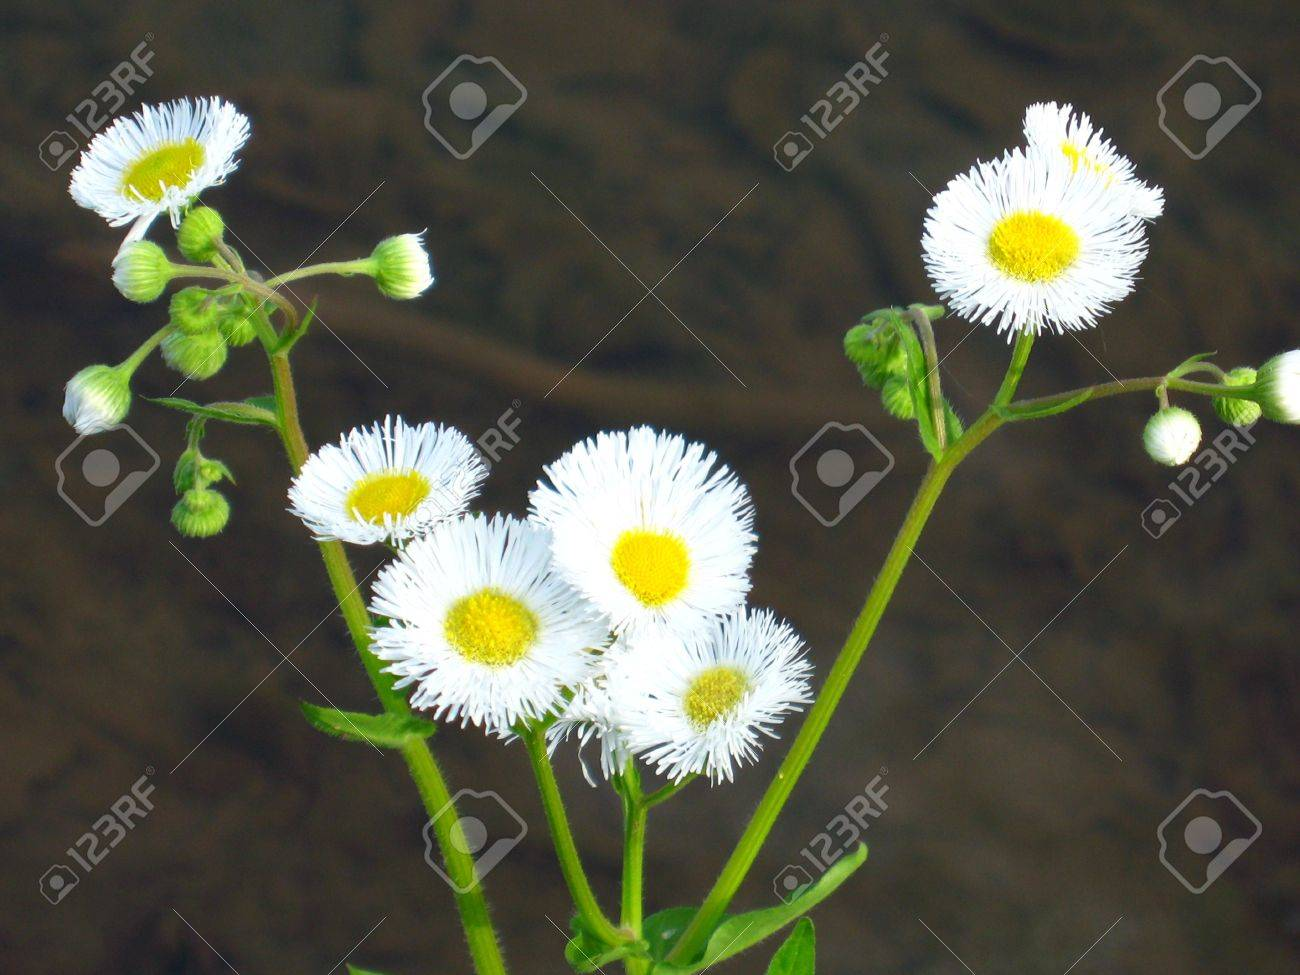 Small Daisy Like Yellow And White Flowers With A Dark Background